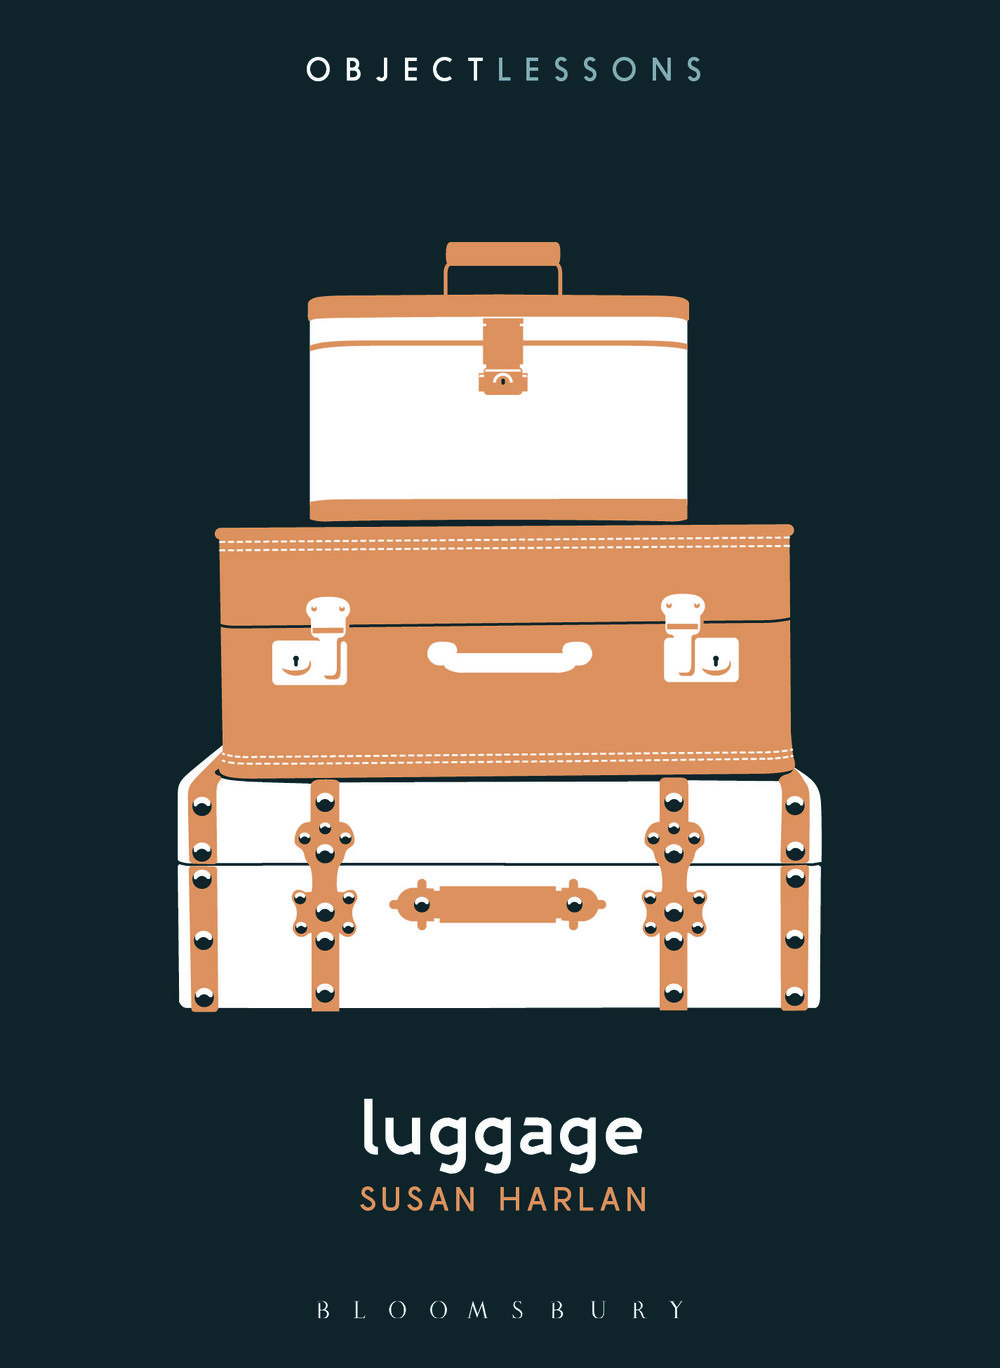 - Luggage traces a narrative history of the things we bring with us when we travel: our luggage, or our baggage. The materials of travel – the suitcases, carry-on bags, totes, trunks, and train cases of the past and present – have stories to tell about displacement, home, gender, class, consumption, and labor. Luggage explores bags as carefully curated microcosms of our domestic and professional selves. It charts the evolution of travel in literature, art, and film. A simple suitcase, it turns out, contains more than you might think. (Bloomsbury, March 2018)